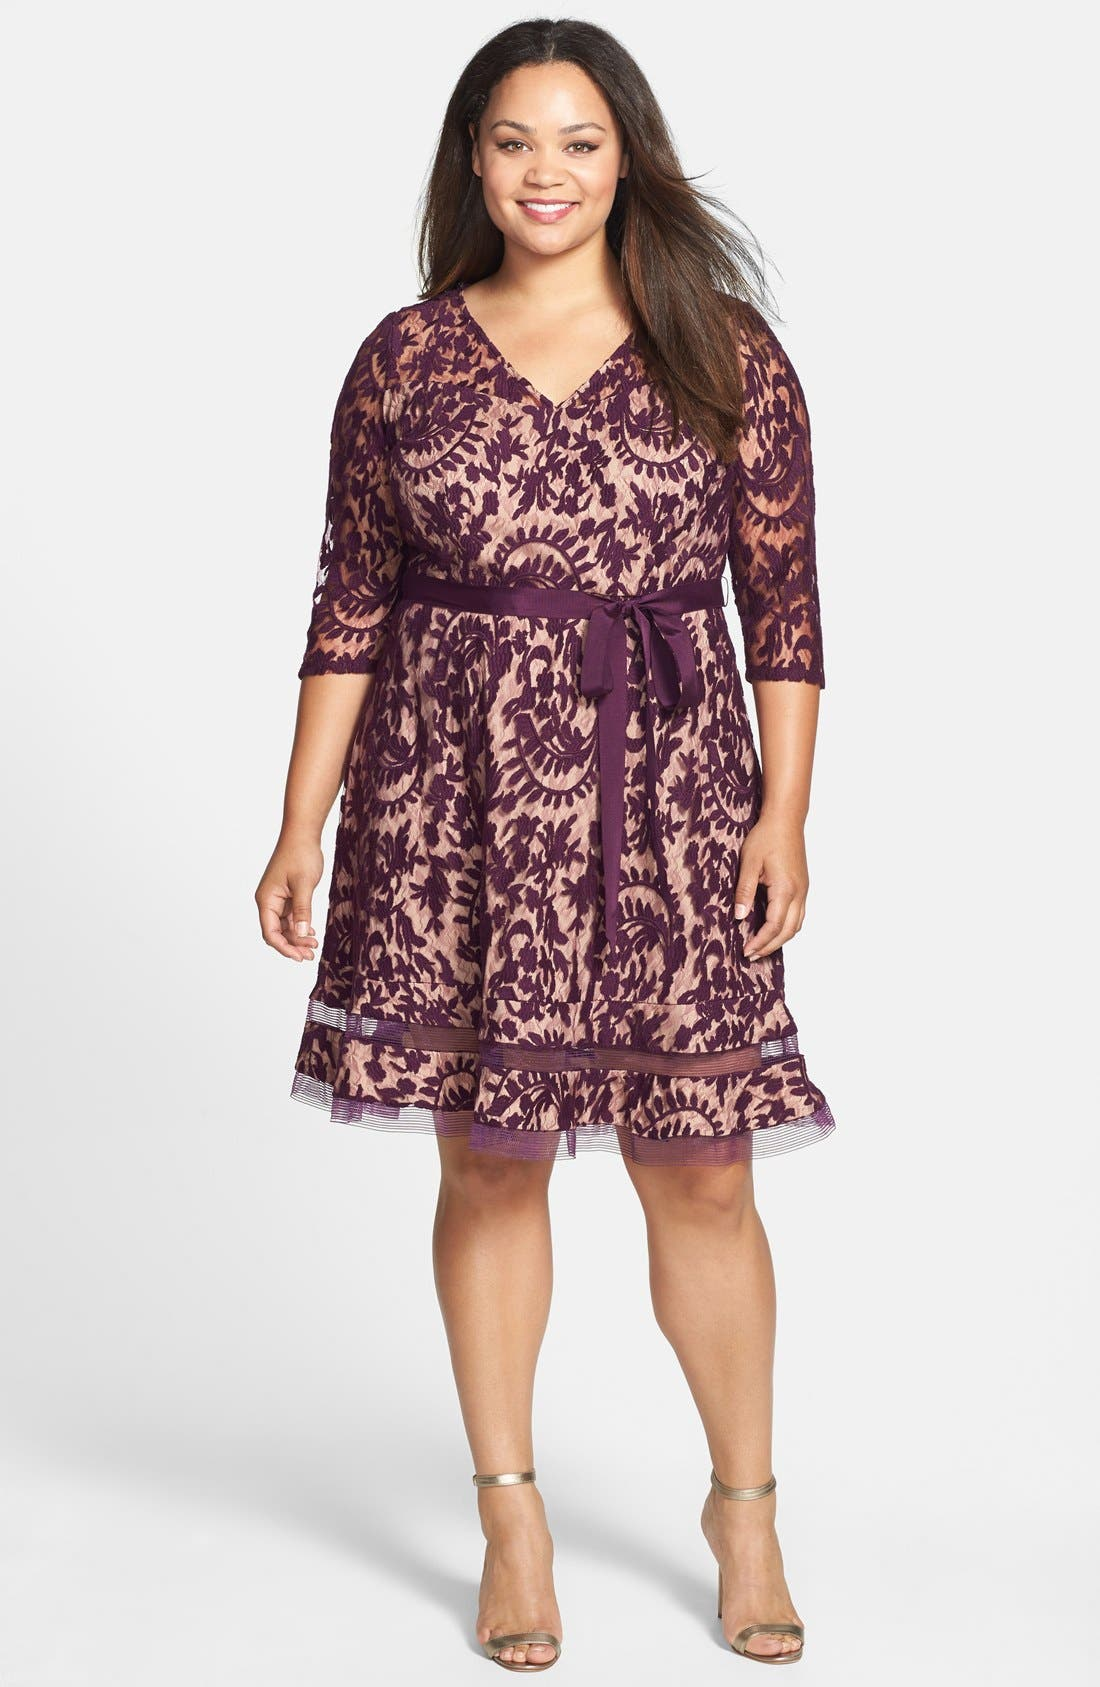 Alternate Image 1 Selected - Adrianna Papell Lace Fit & Flare Dress (Plus Size)